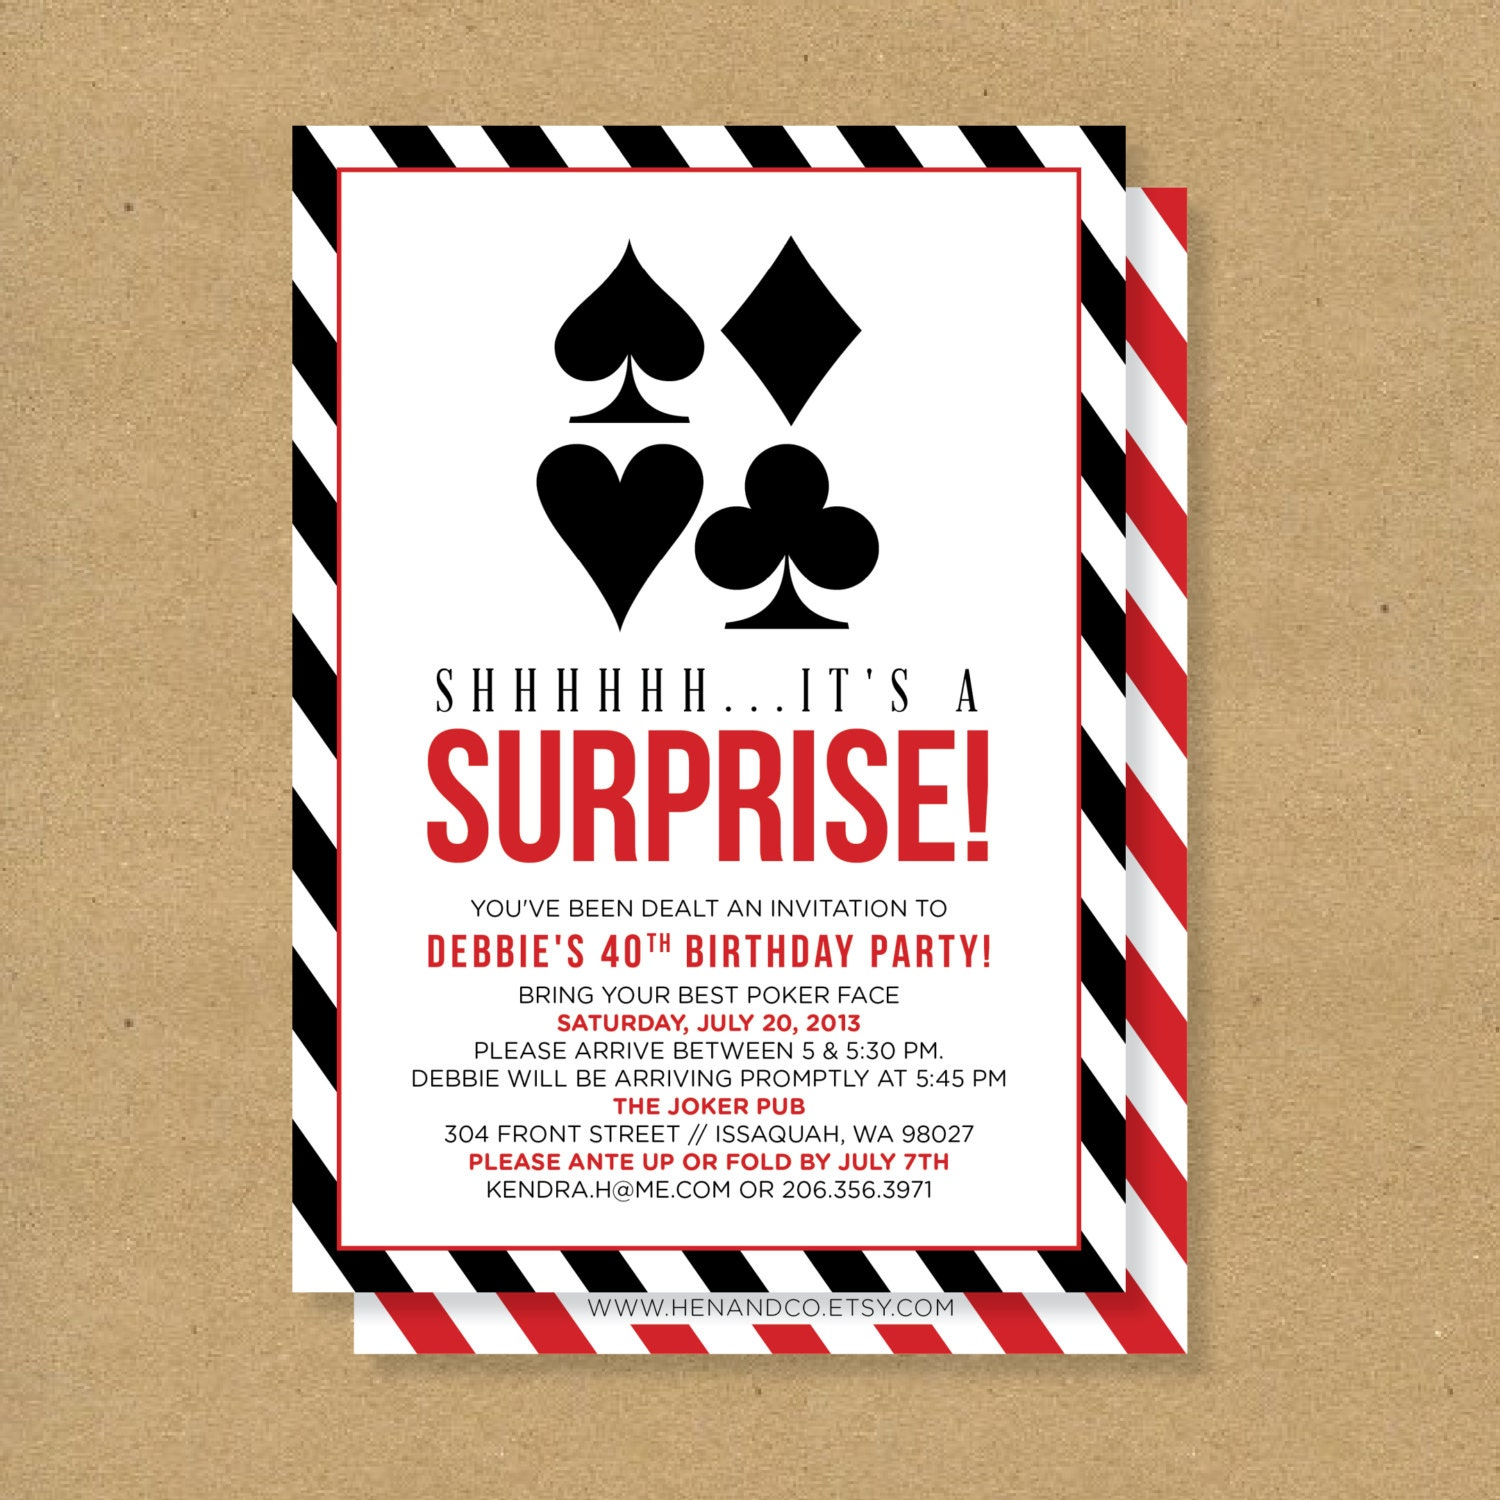 Casino Themed Birthday Party Invitations as nice invitations example